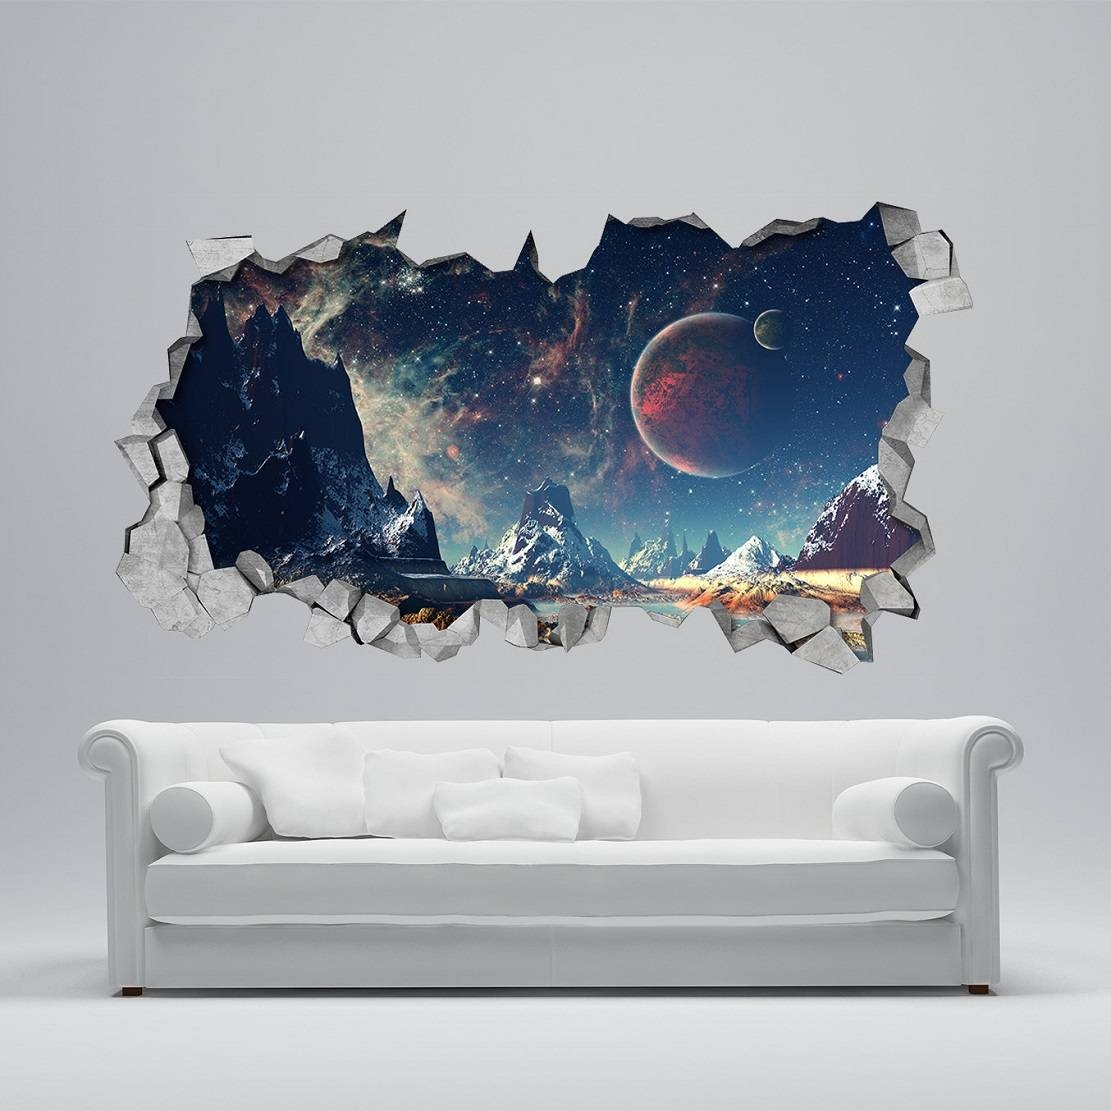 25 Unparalleled 3d Wall Art For Charming Homewall Decor Vill Pertaining To Most Current Astronaut 3d Wall Art (View 5 of 20)